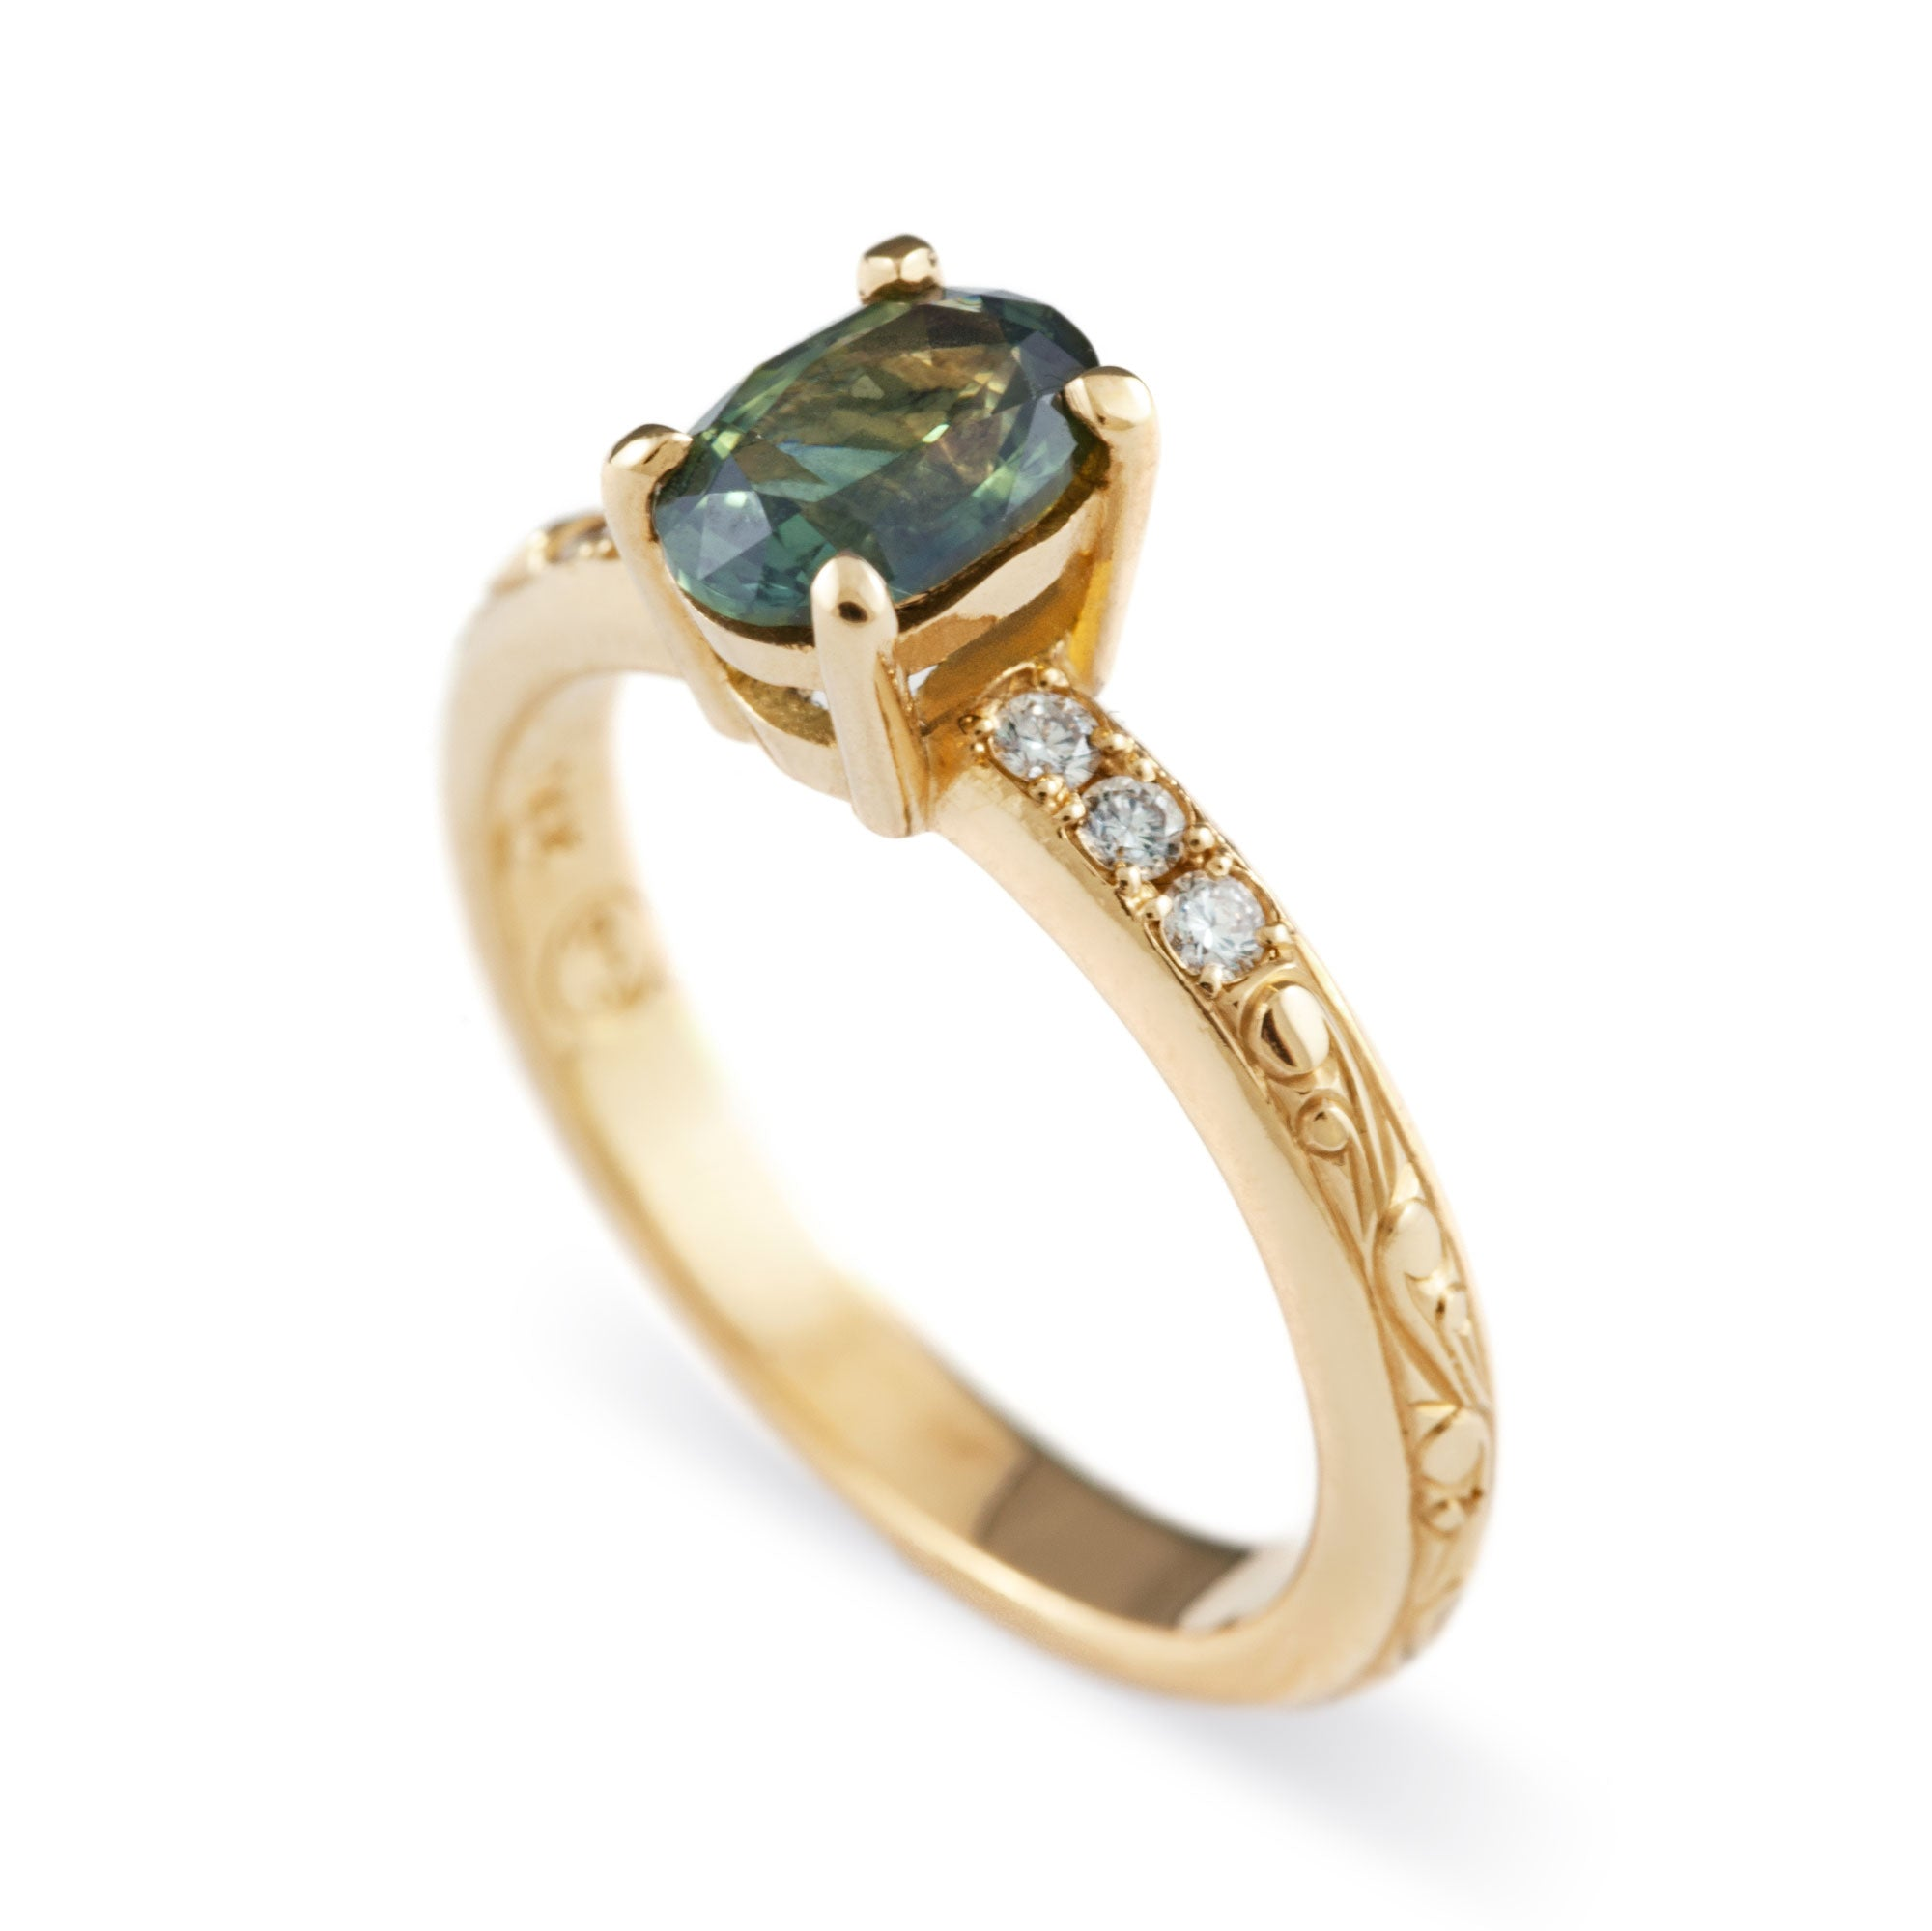 Oval Willow Gemstone Engagement Ring - Era Design Vancouver